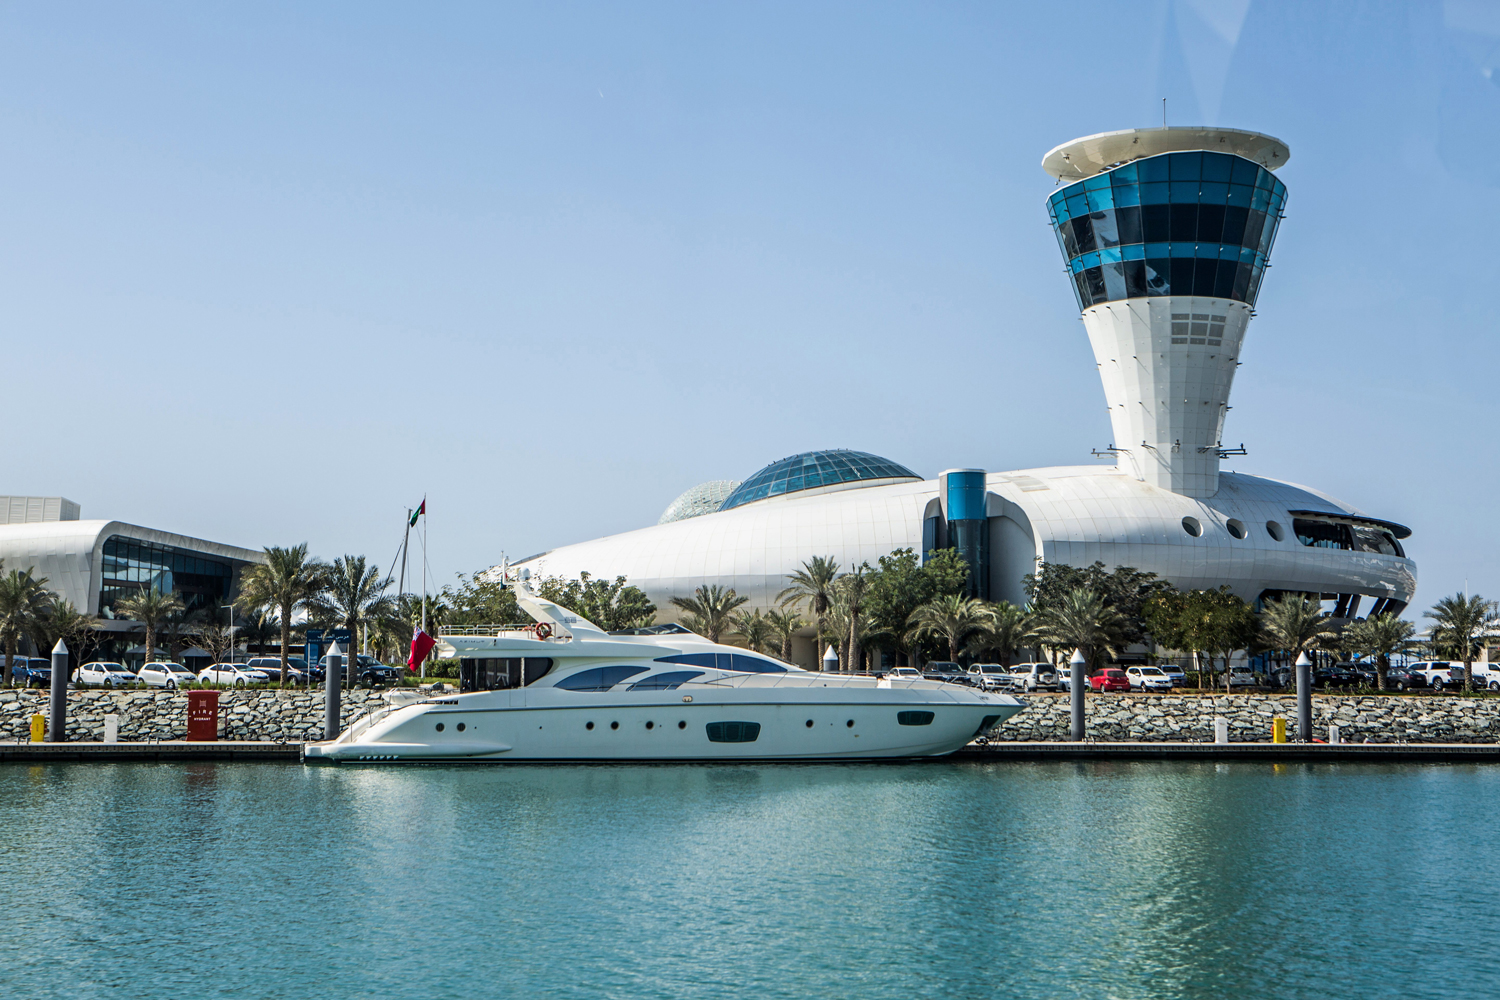 Where to hire a boat or yacht in Abu Dhabi